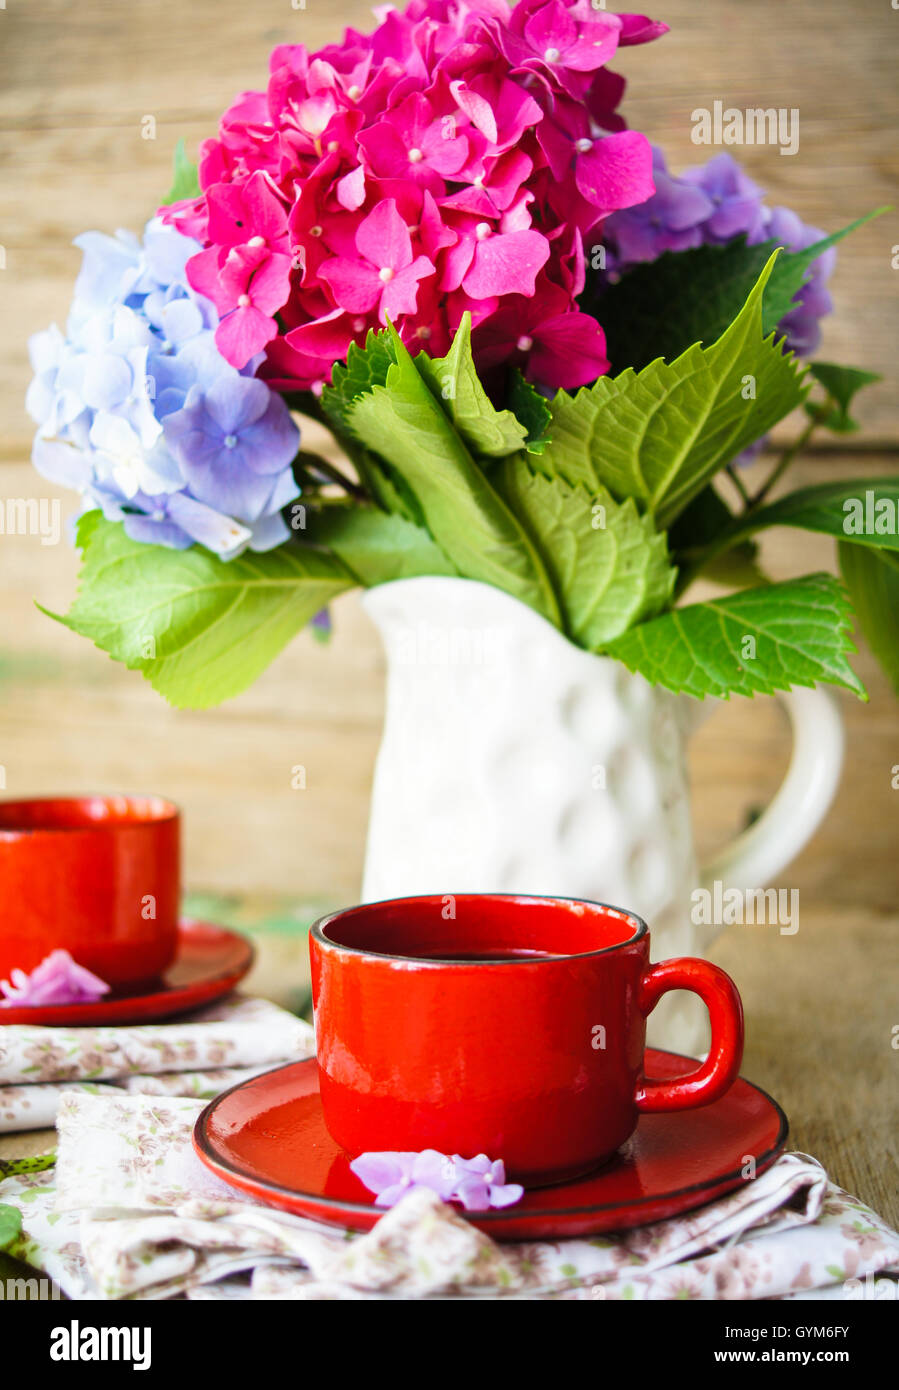 hydrangea flowers in a vase and cup of coffee on the wooden table